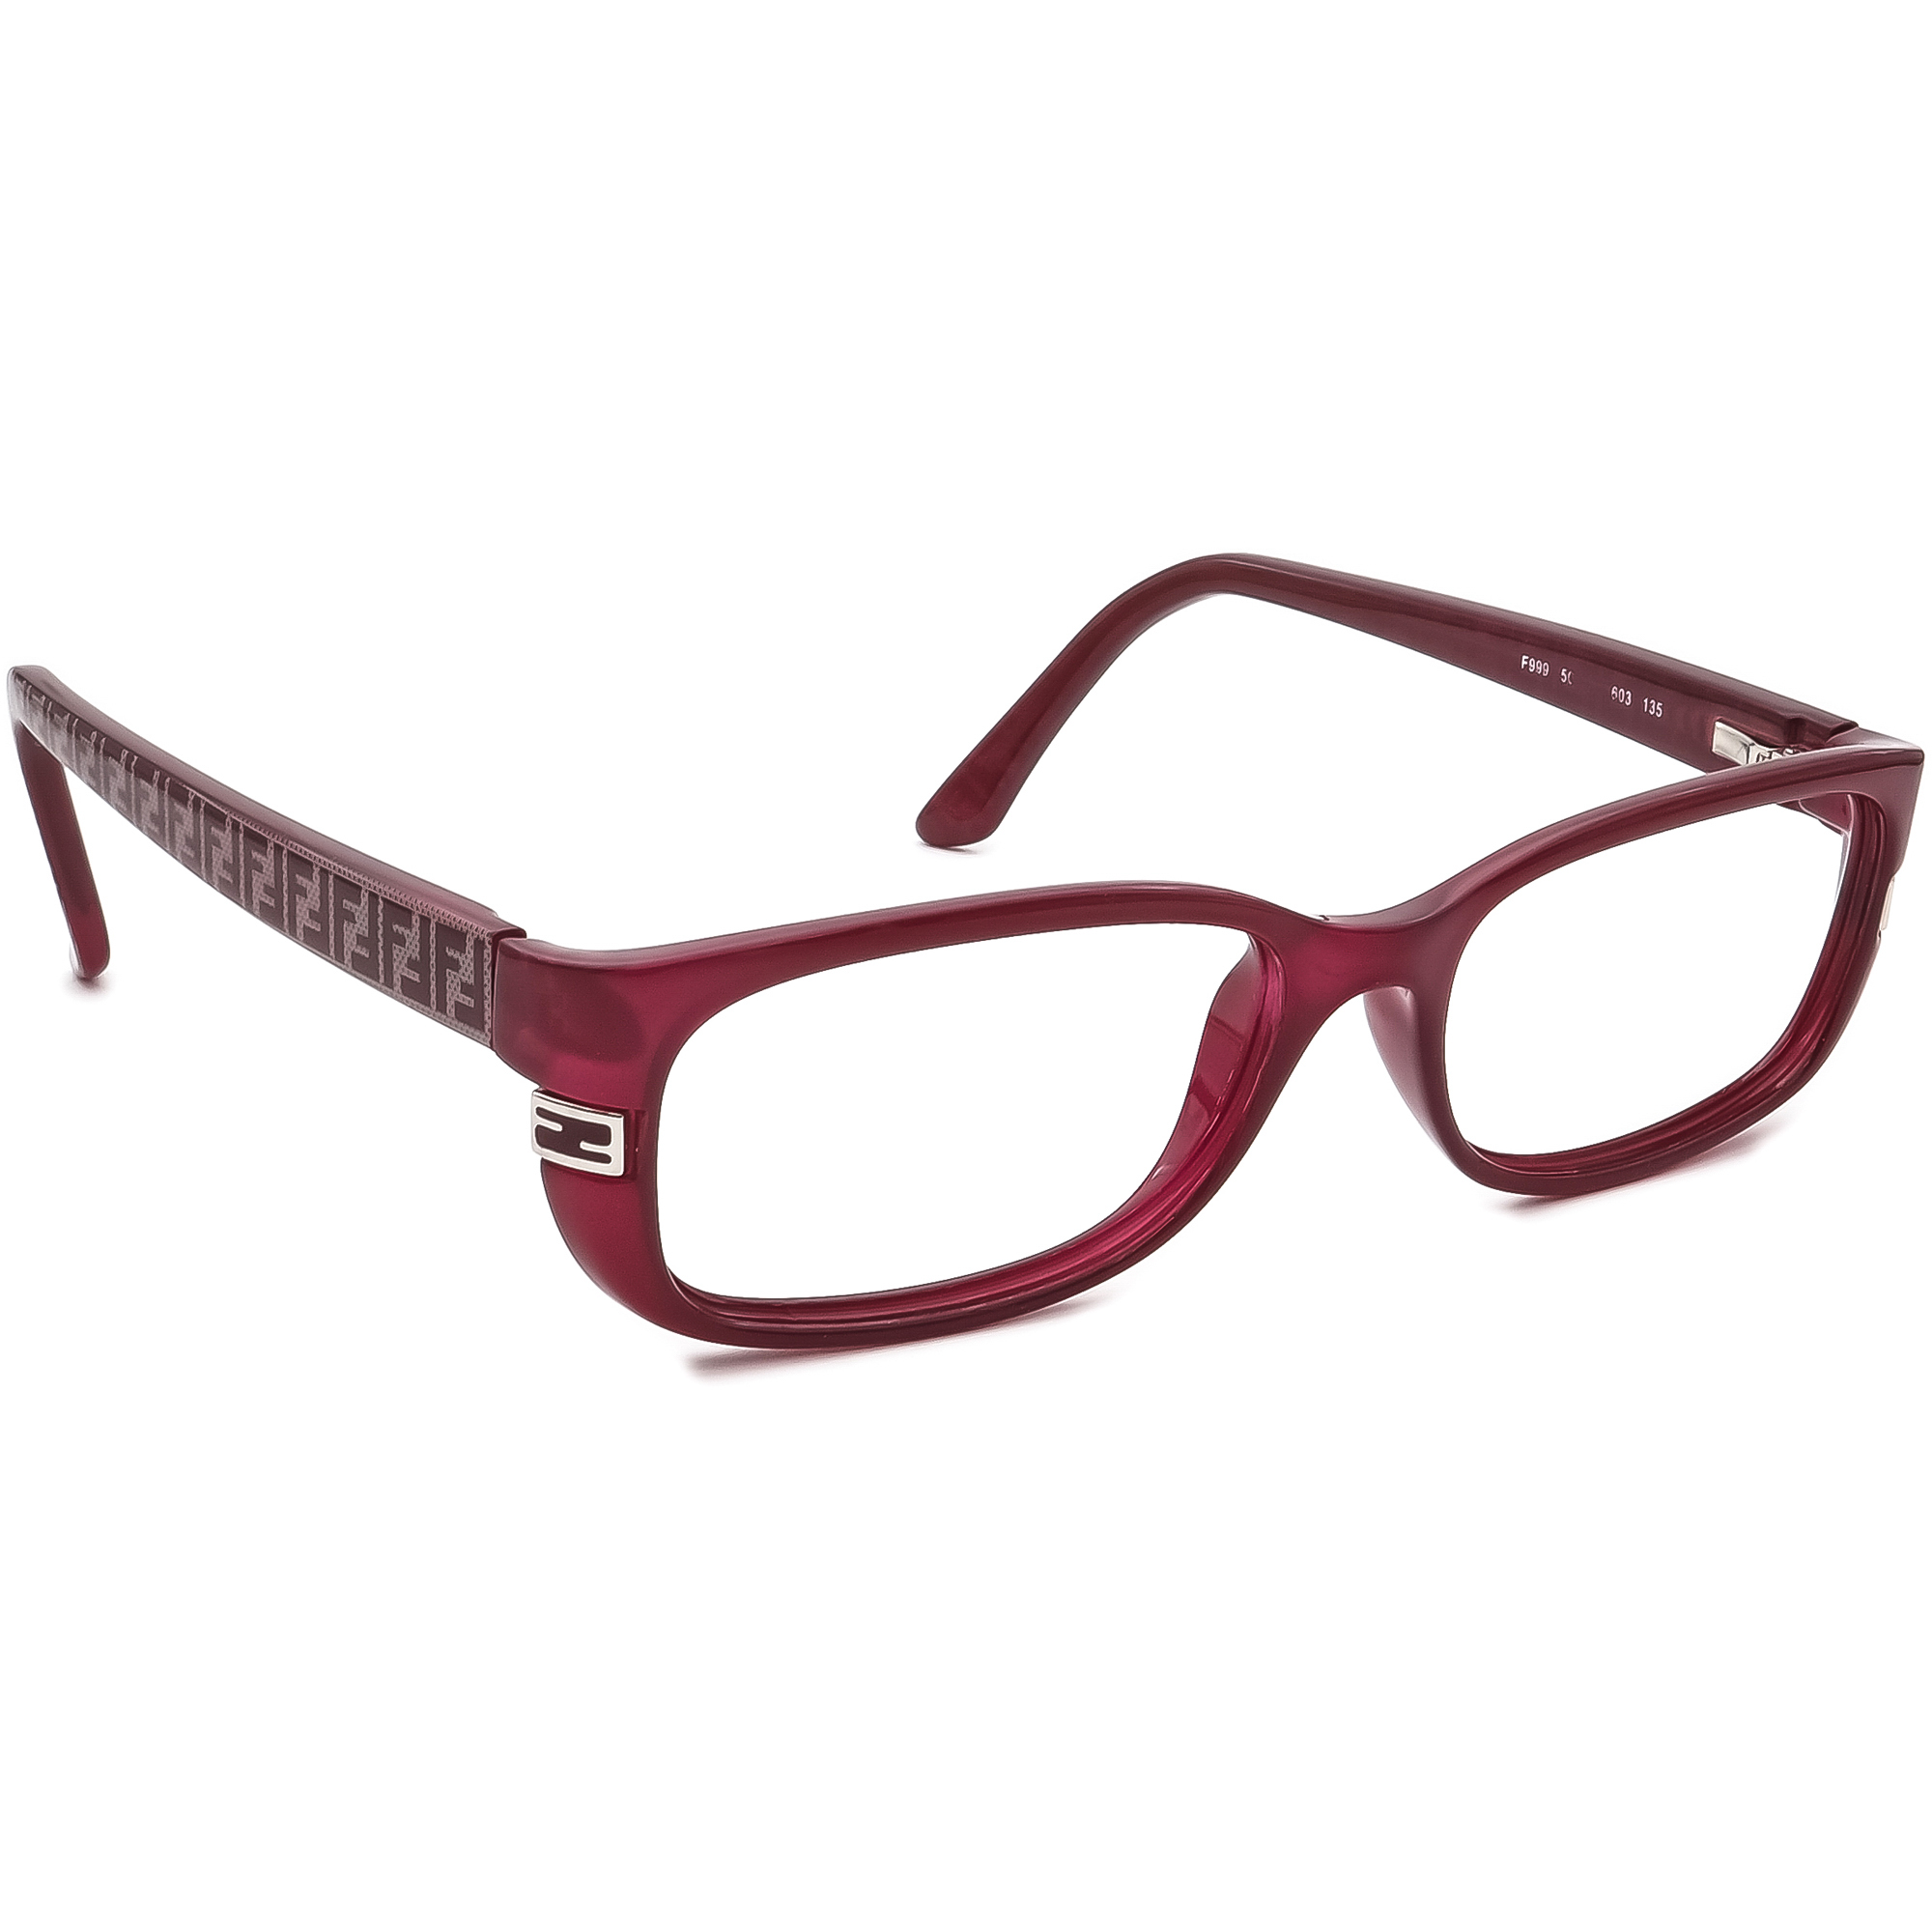 Fendi F999 603 Eyeglasses